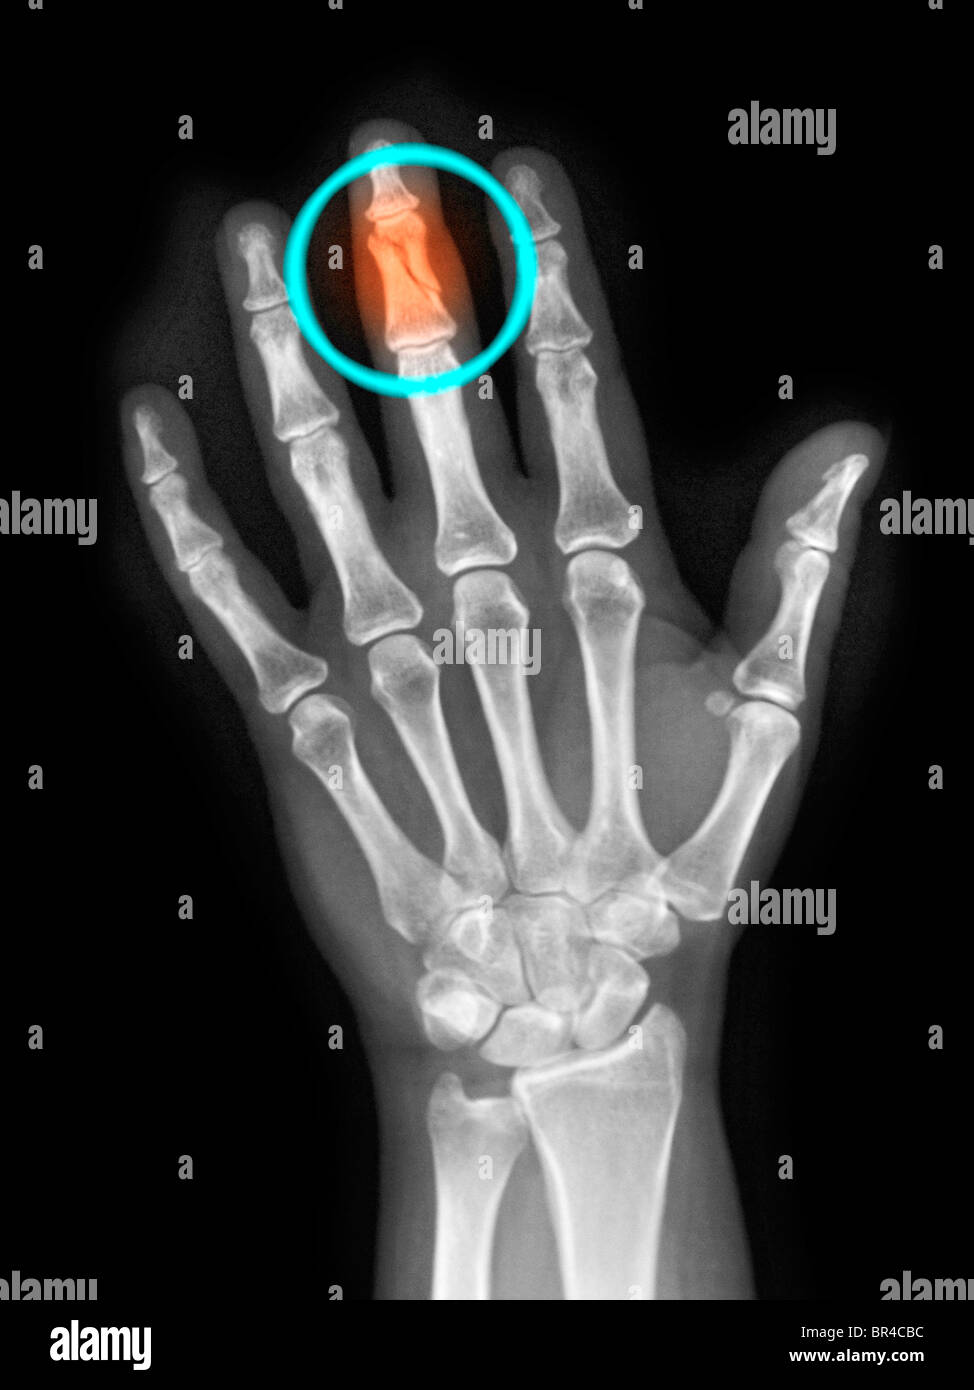 x-ray of the hand of a 40 year old woman showing a fractured middle finger - Stock Image